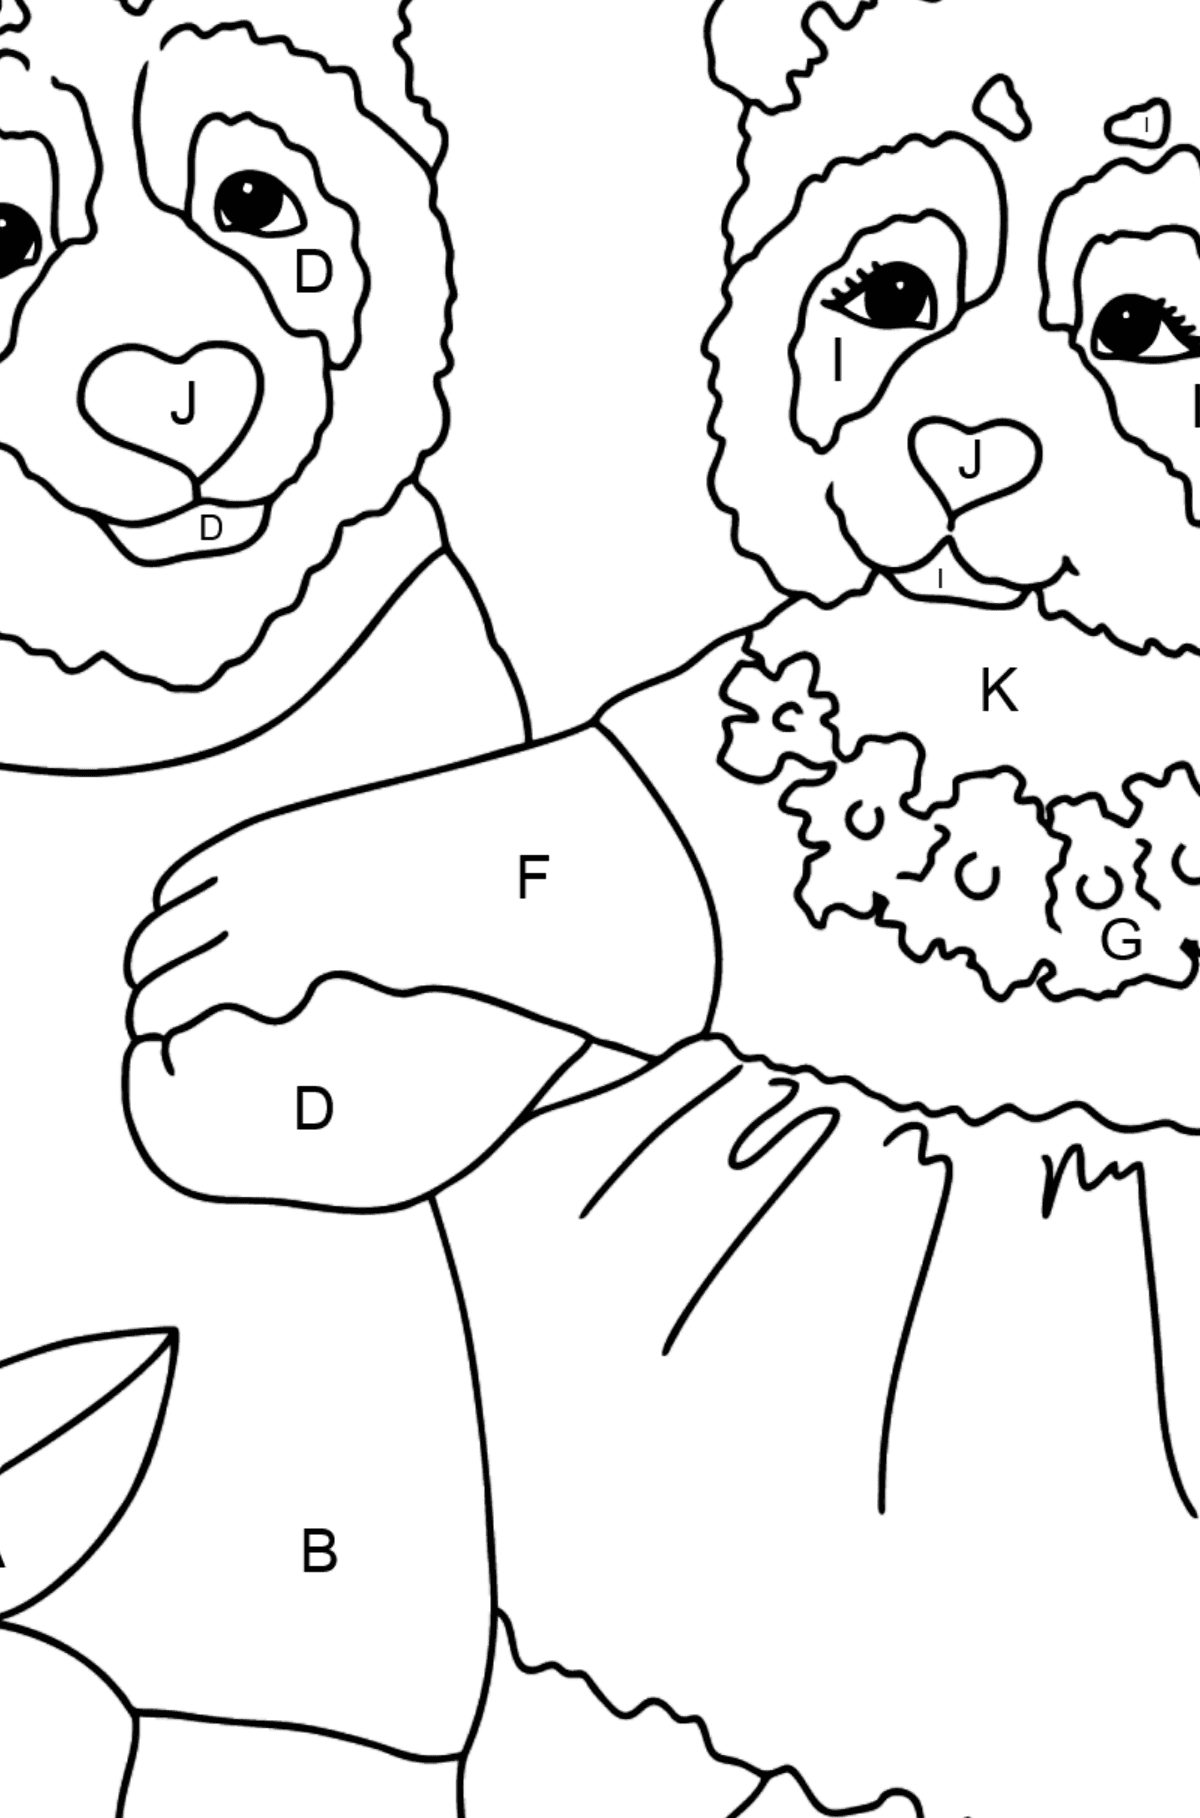 Coloring Page - Pandas are Taking a Walk - Coloring by Letters for Kids